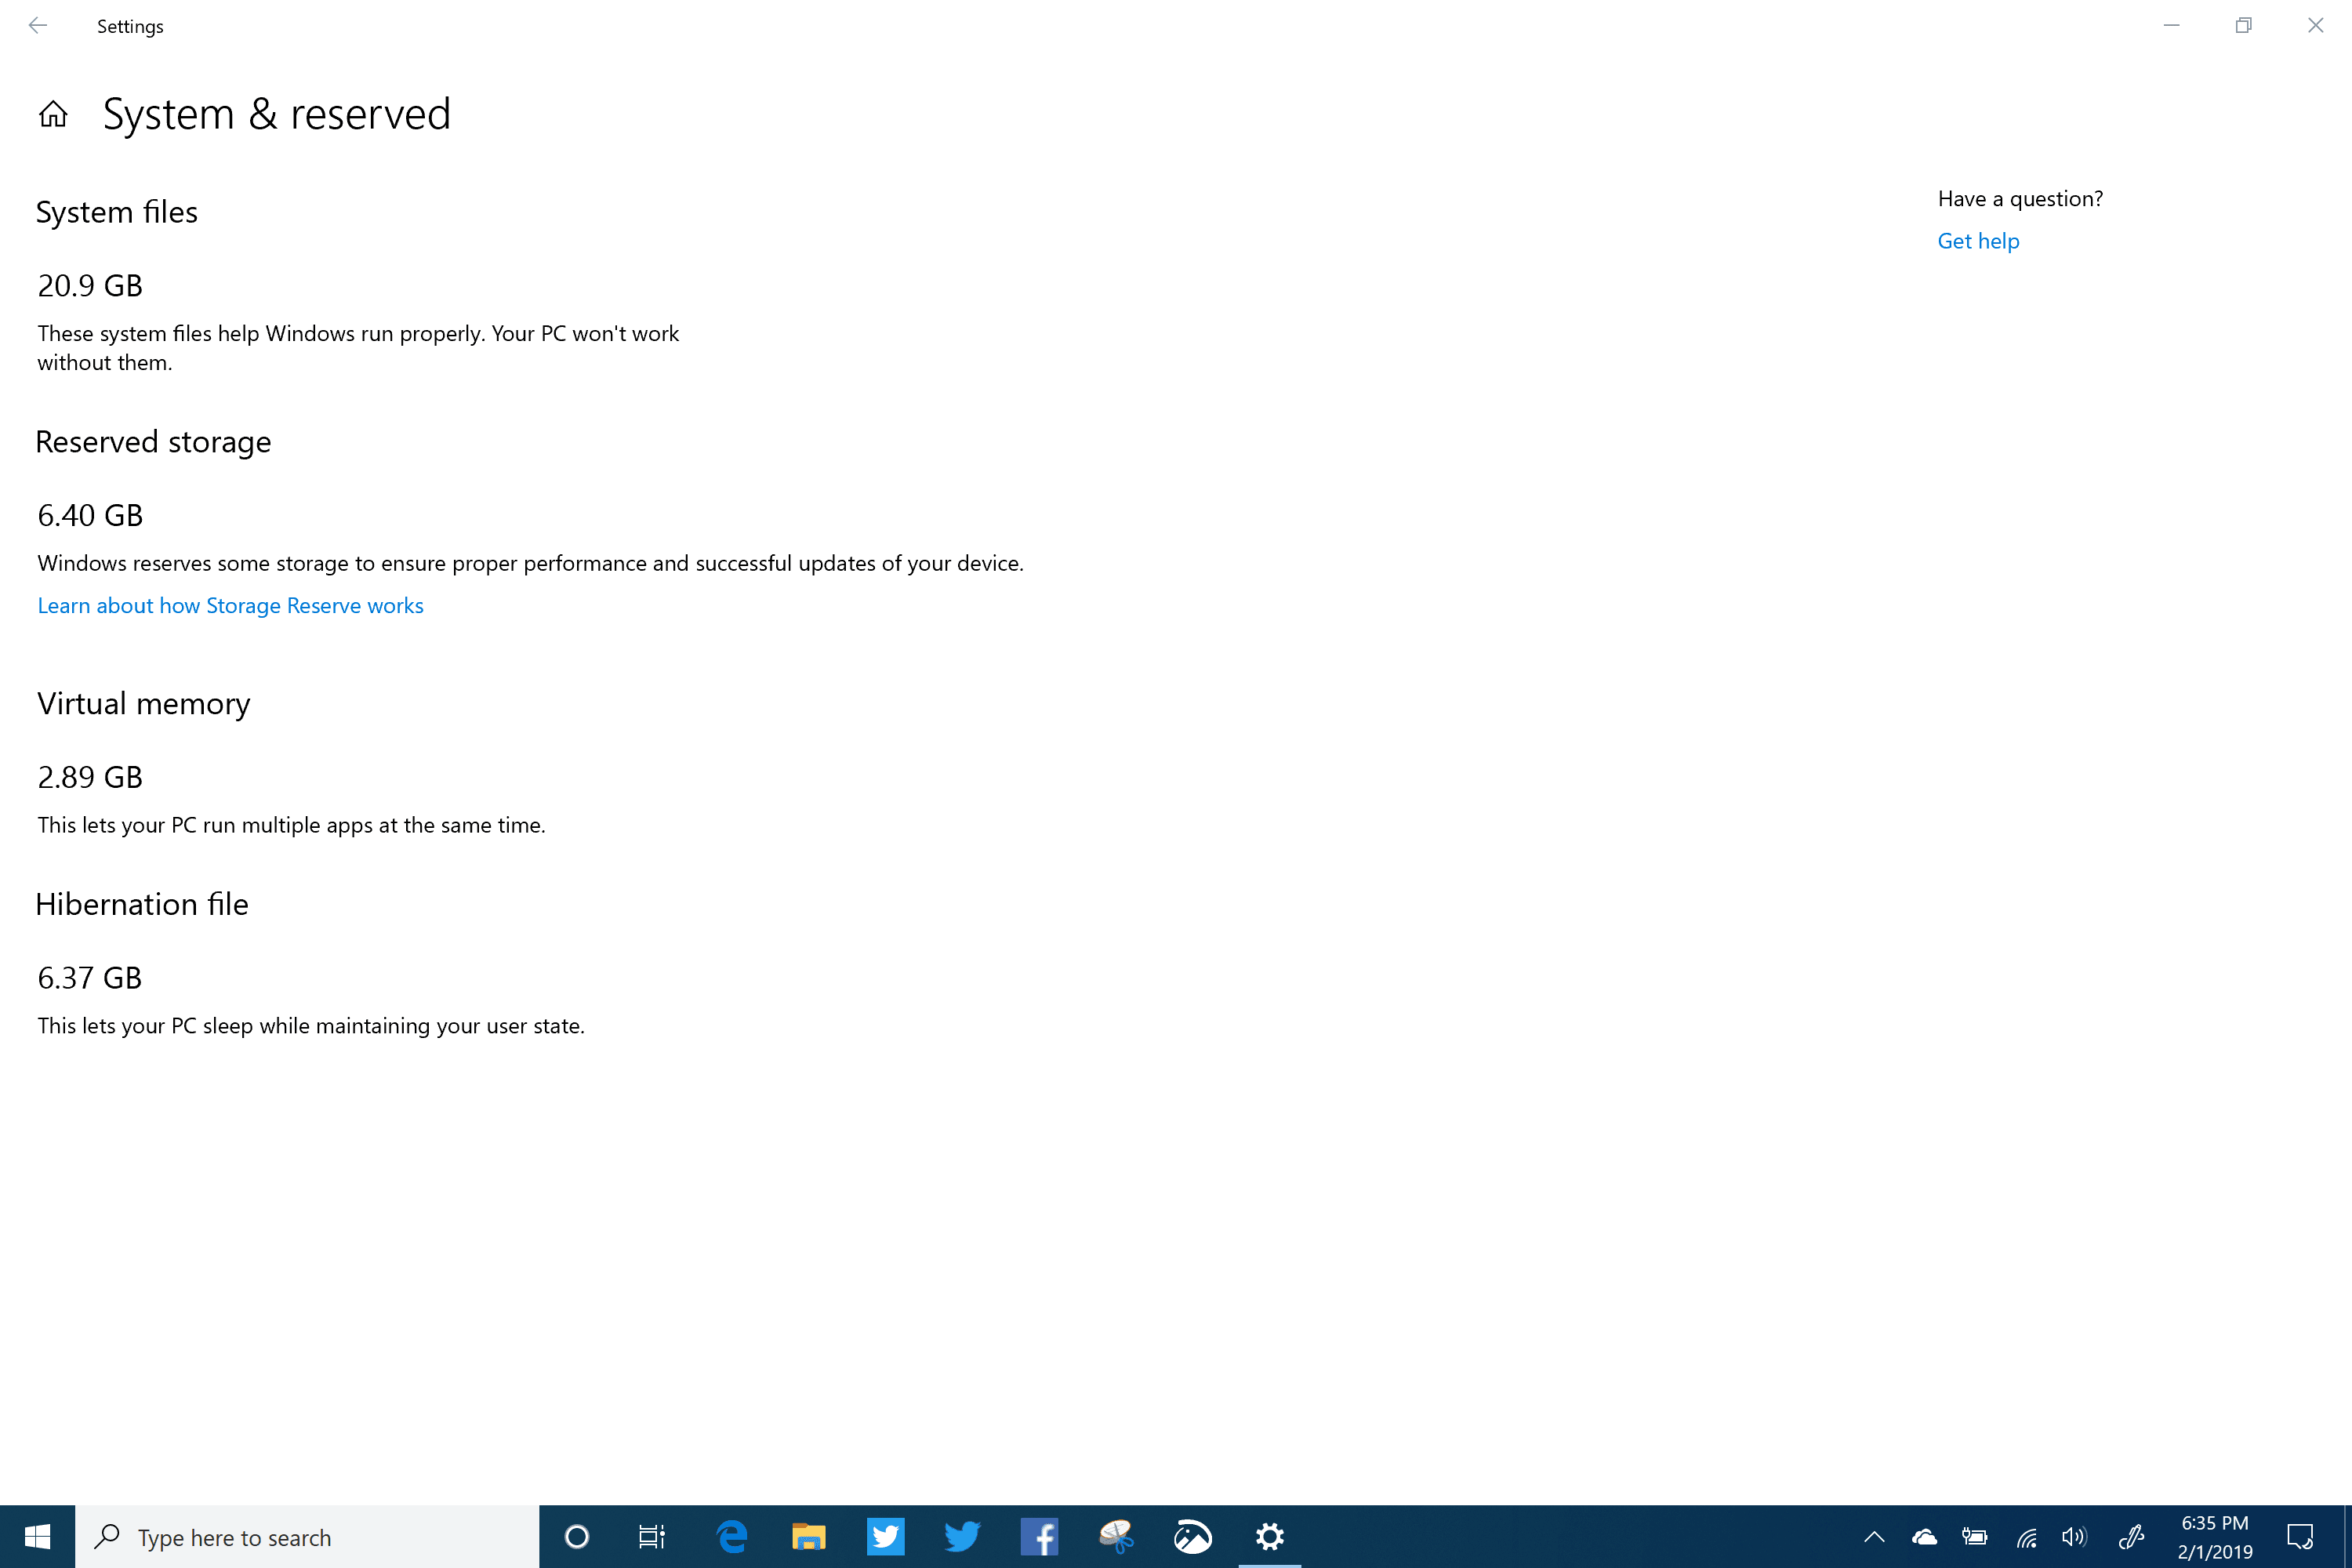 Windows 10 (19H1) reserved Disk Space Build 18329 on Surface Book